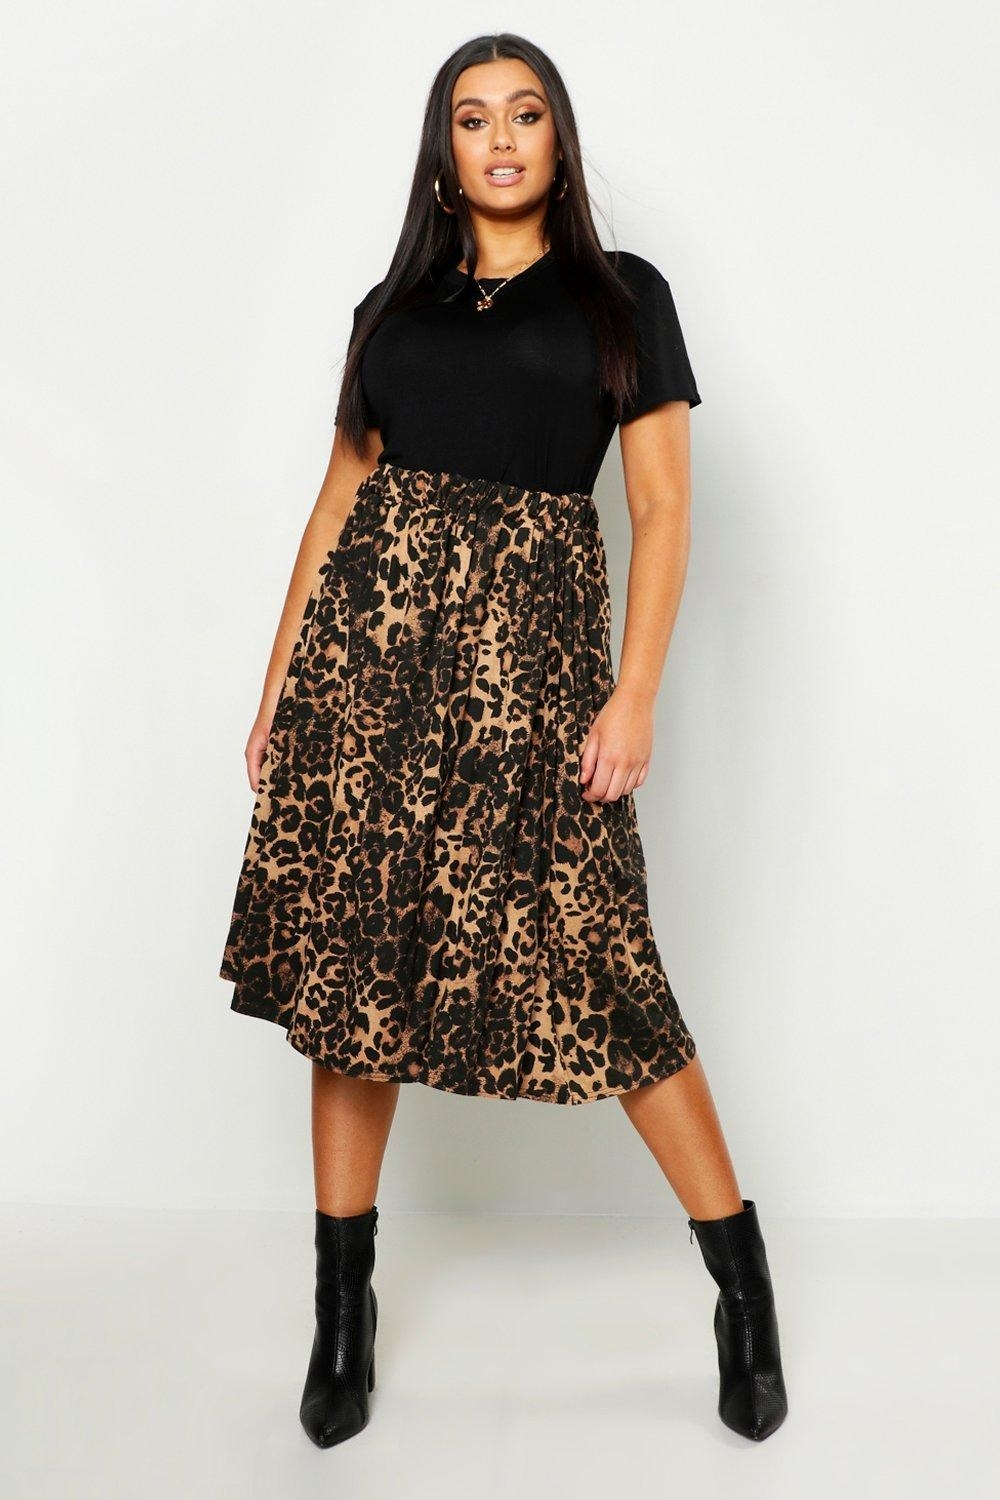 Model wearing the midi brown leopard print skirt